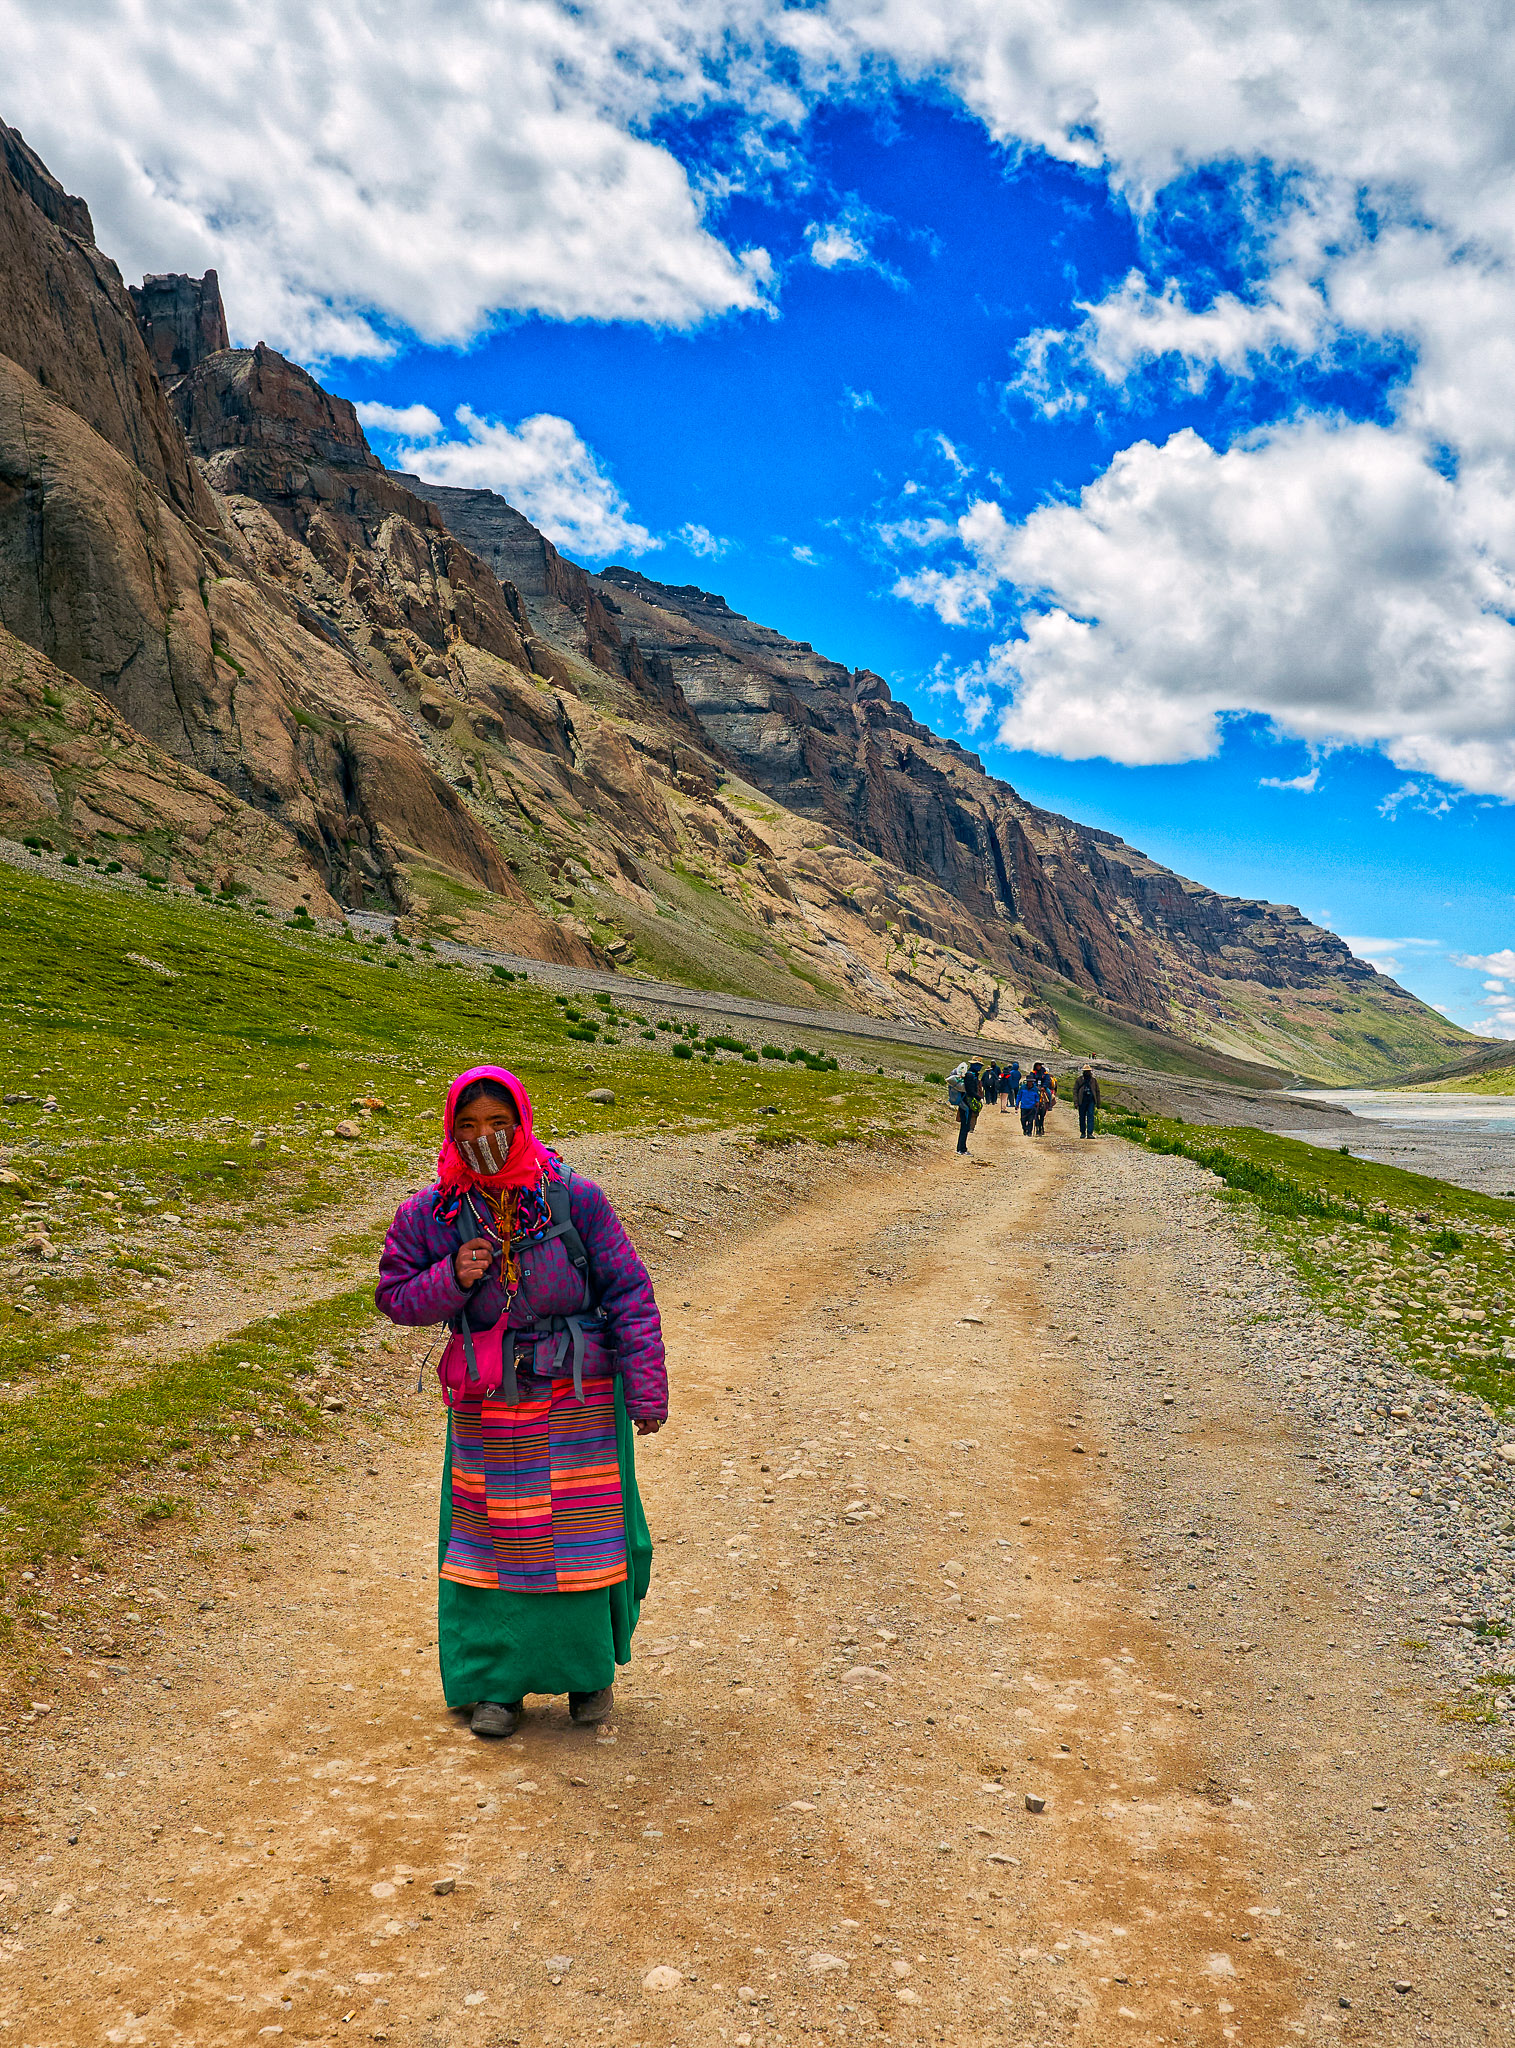 A Sherpa woman carrying a bag for the trekkers, Mount Kailash, Tibet